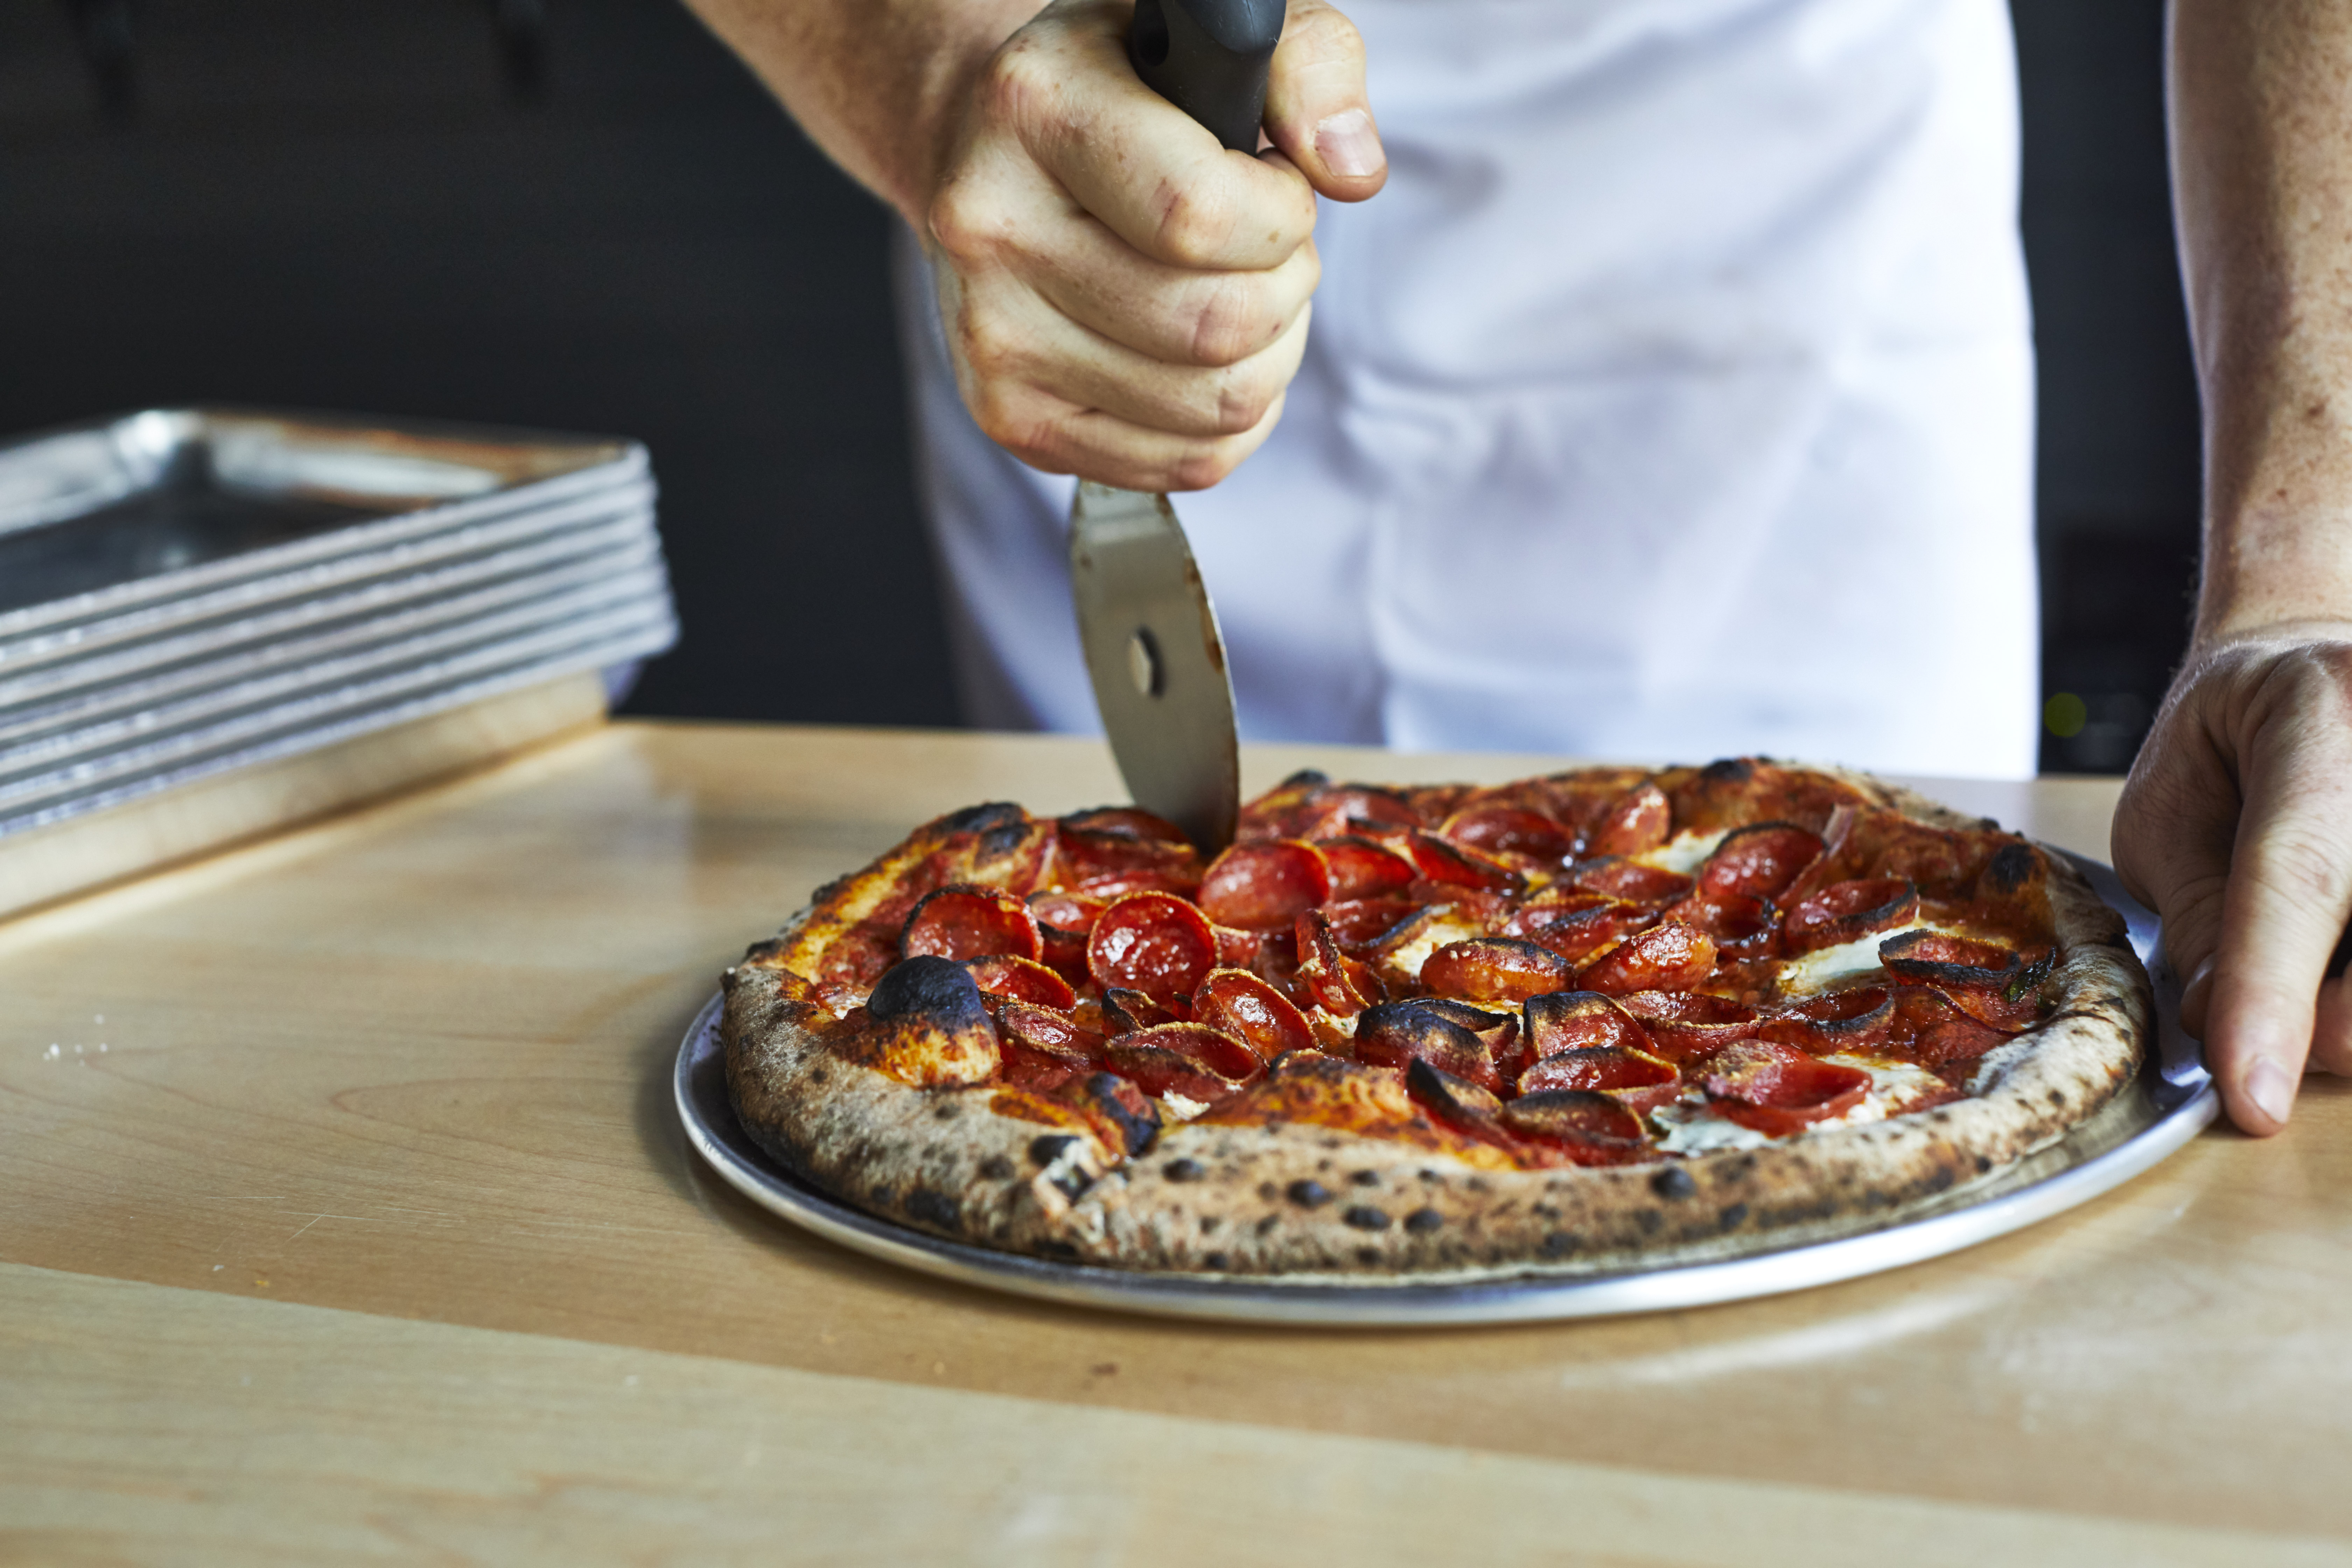 a man's hand slices a pepperoni topped pizza on the counter